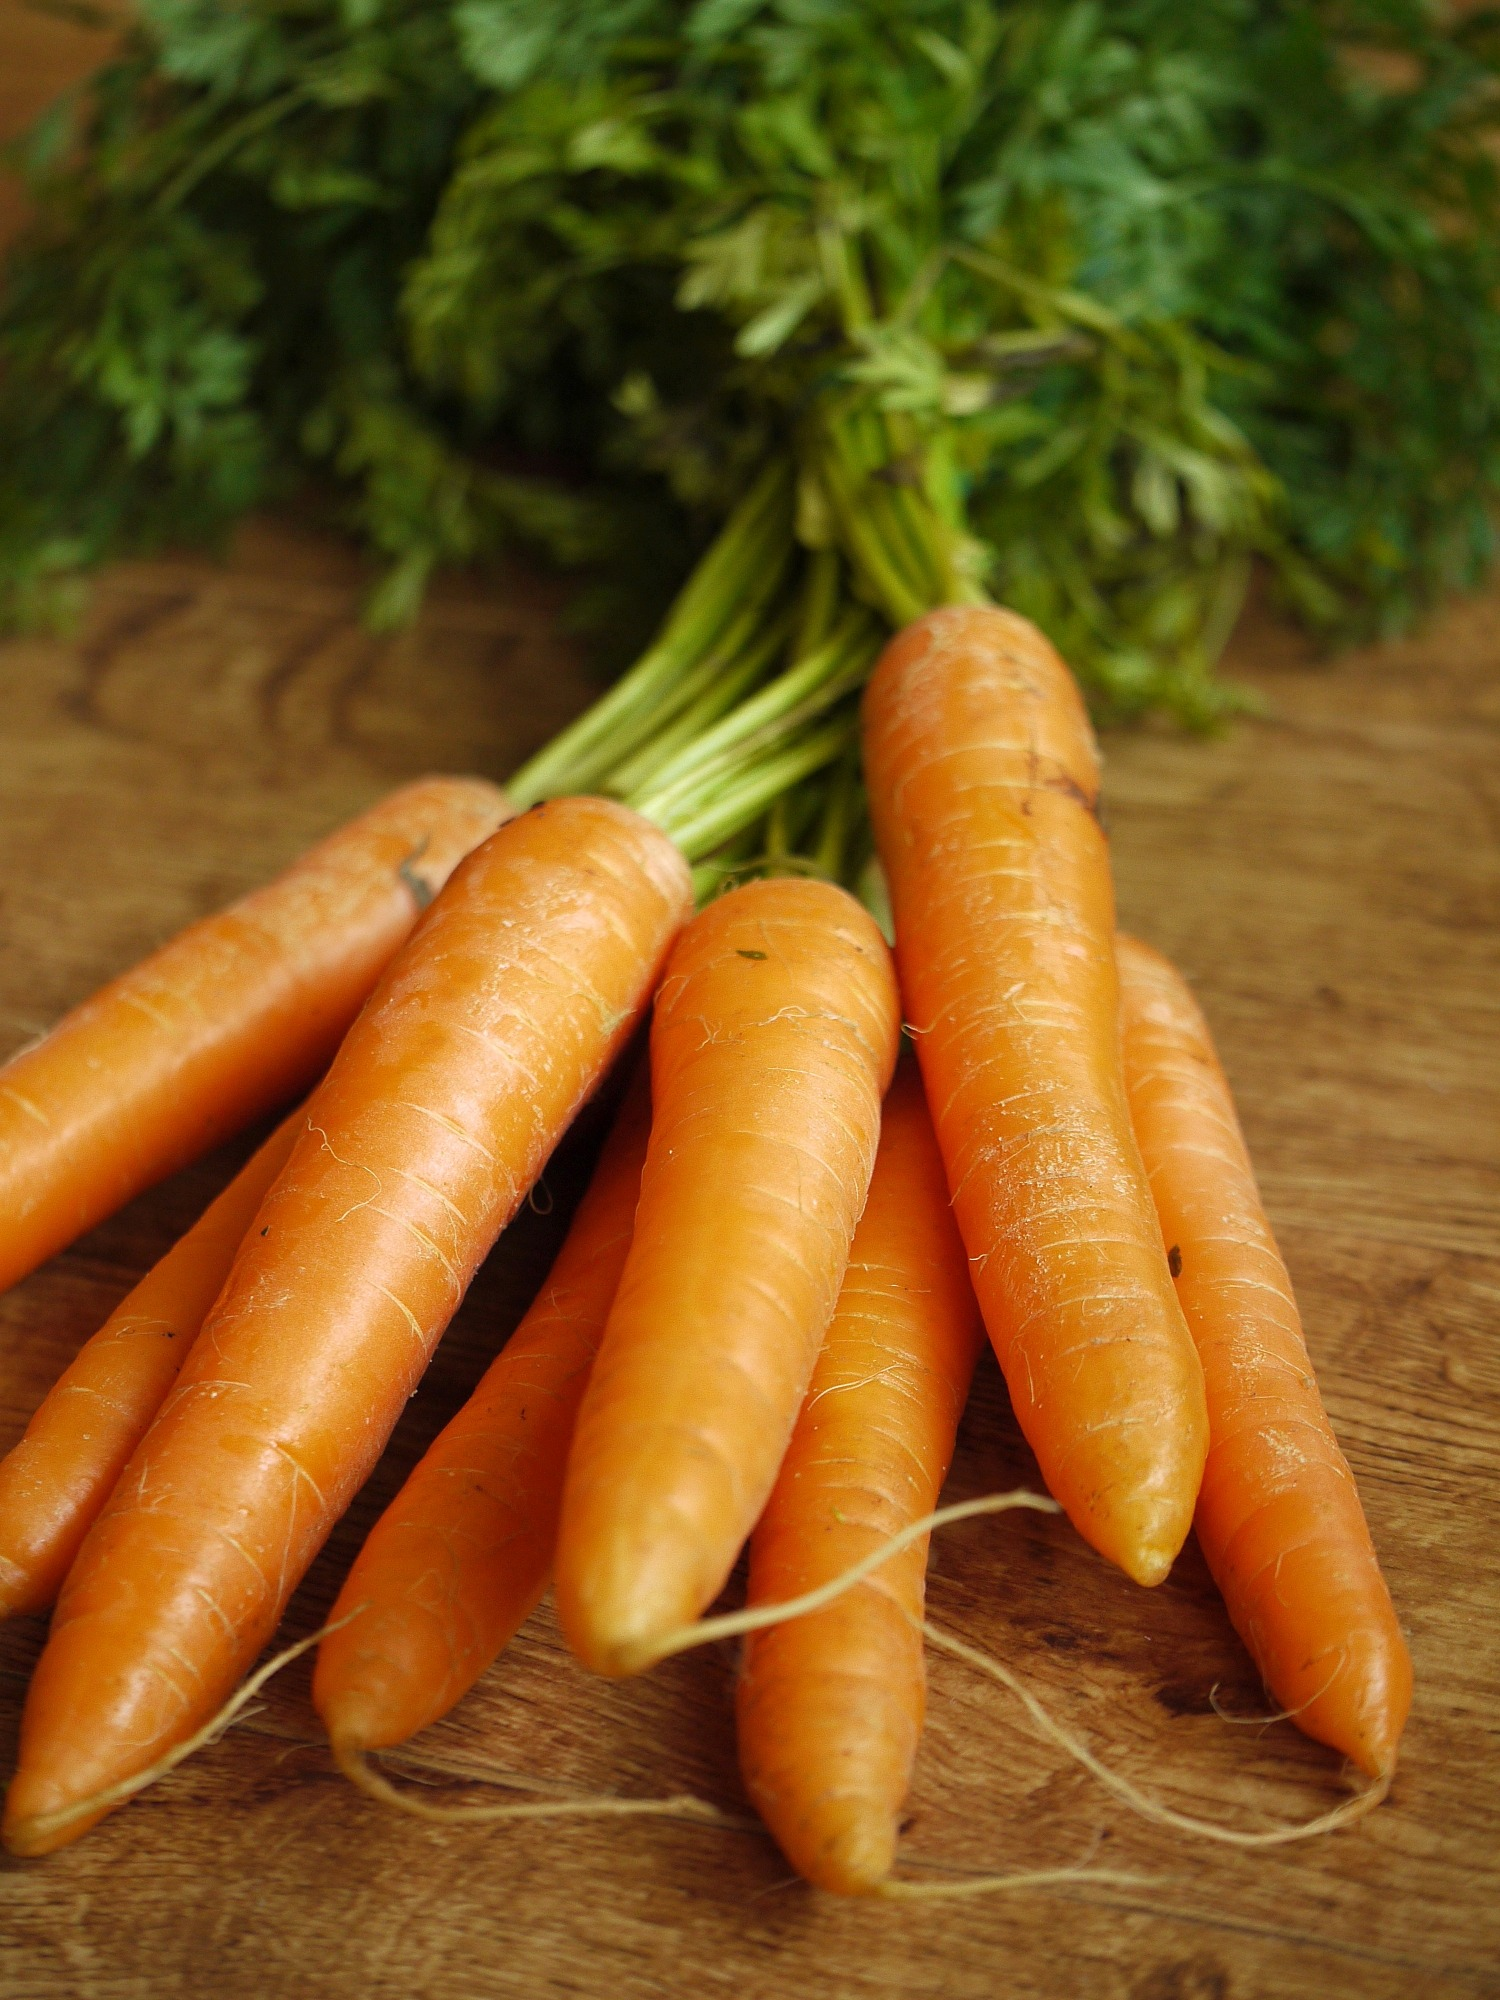 Juicing Garden Carrots